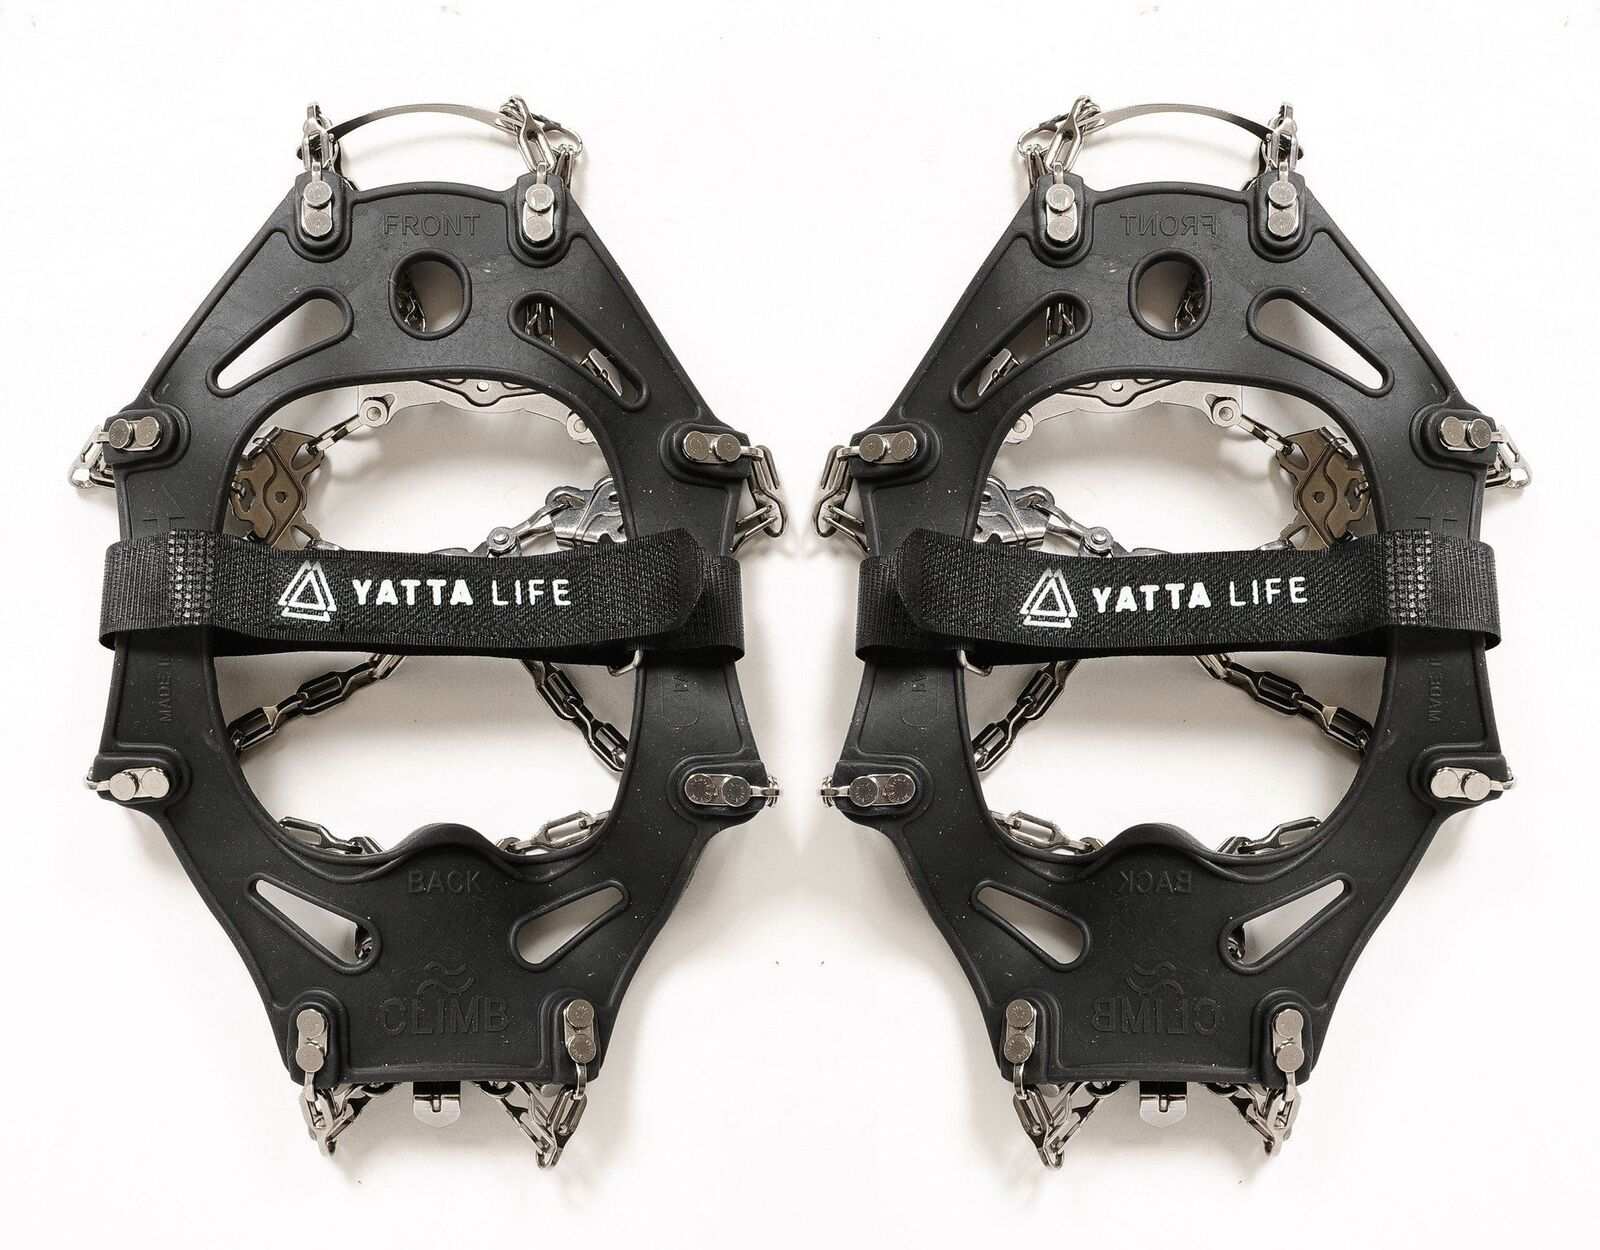 Yatta Life Trail Spikes Crampon Ice Grips (large)